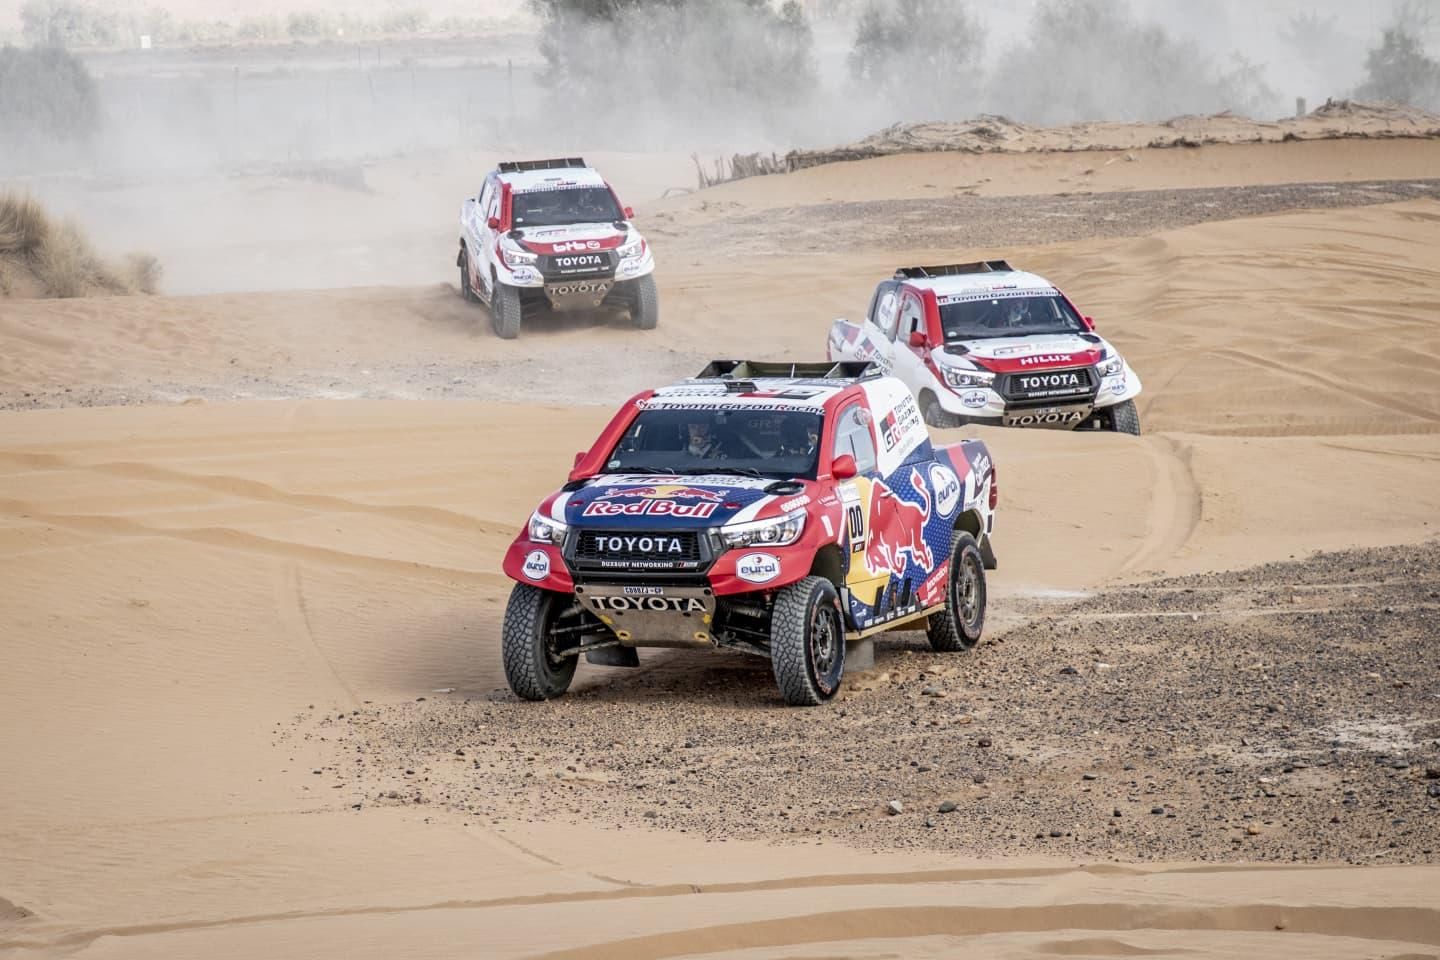 rally-marruecos-2019-world-cup-fia-fernando-alonso-2